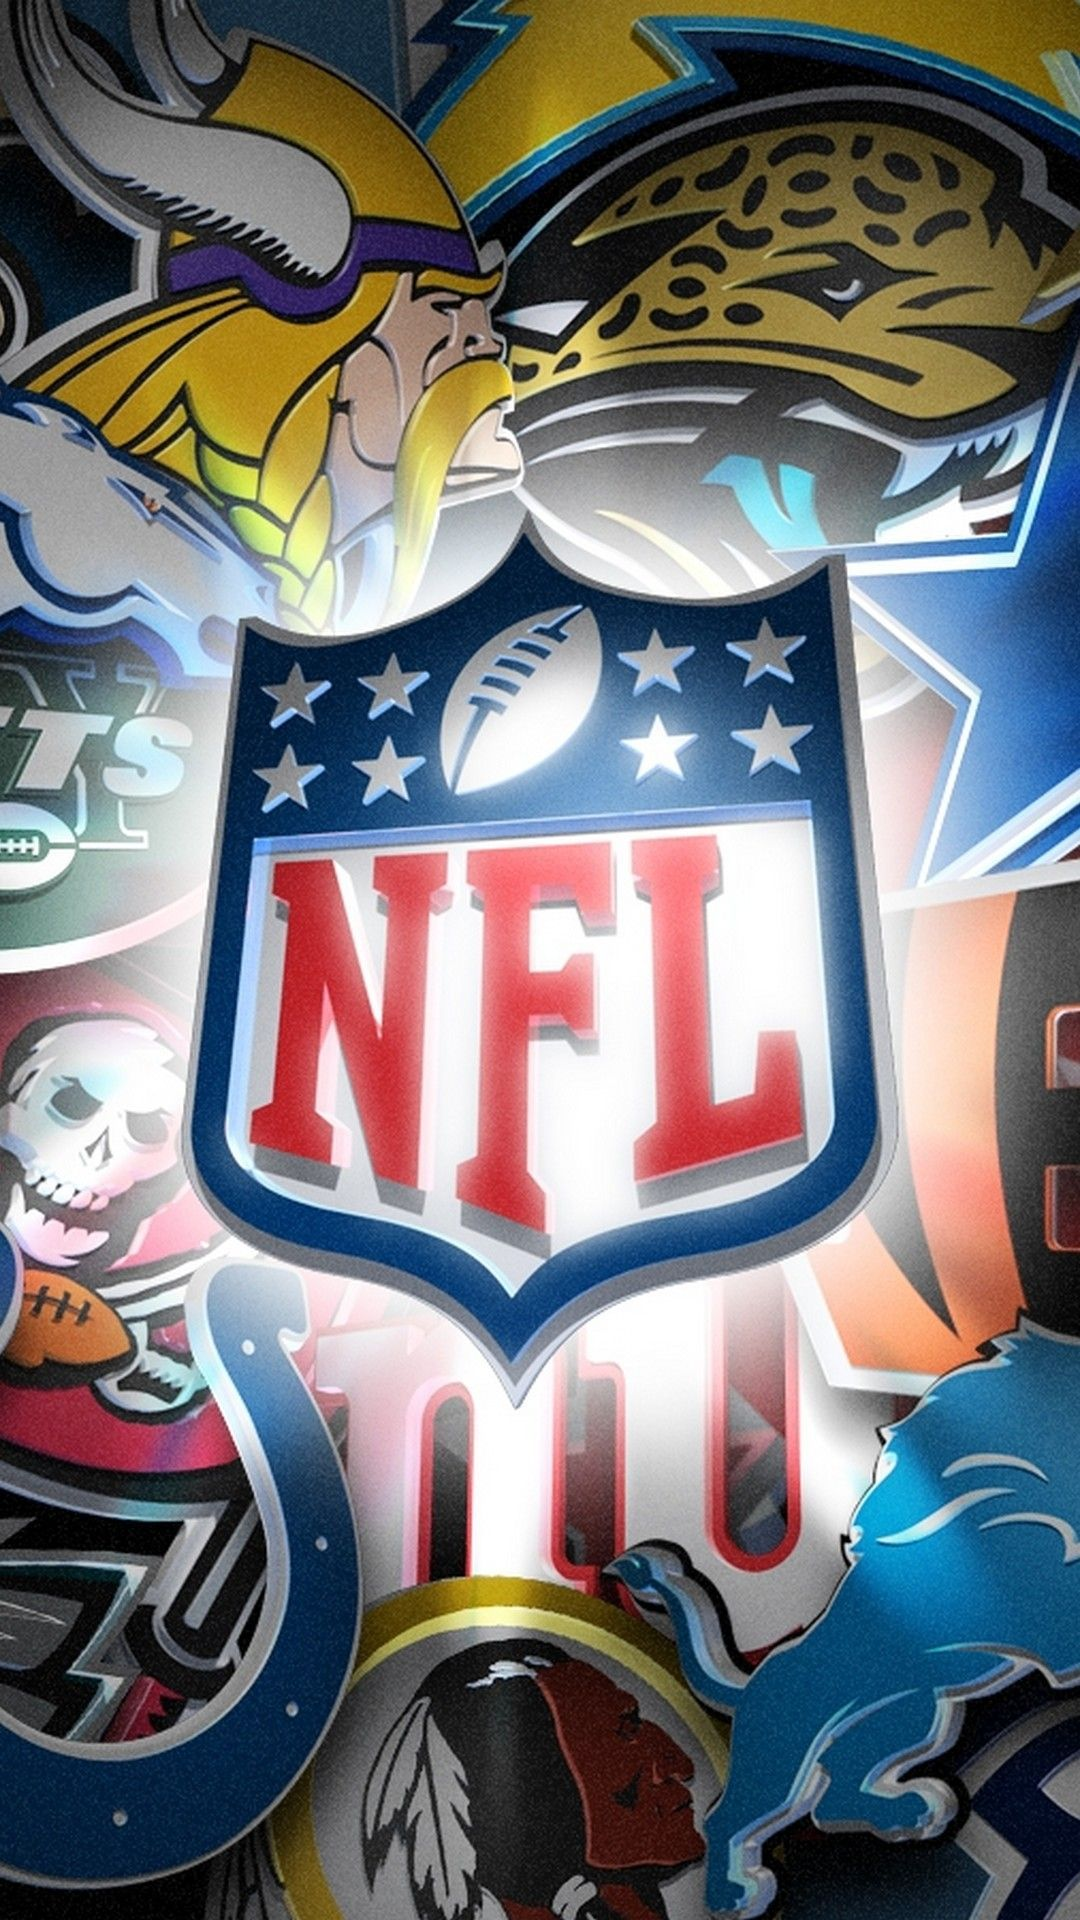 Pin By Sarah Gmbh On Esportes In 2020 Nfl Football Wallpaper Football Wallpaper Rugby Wallpaper